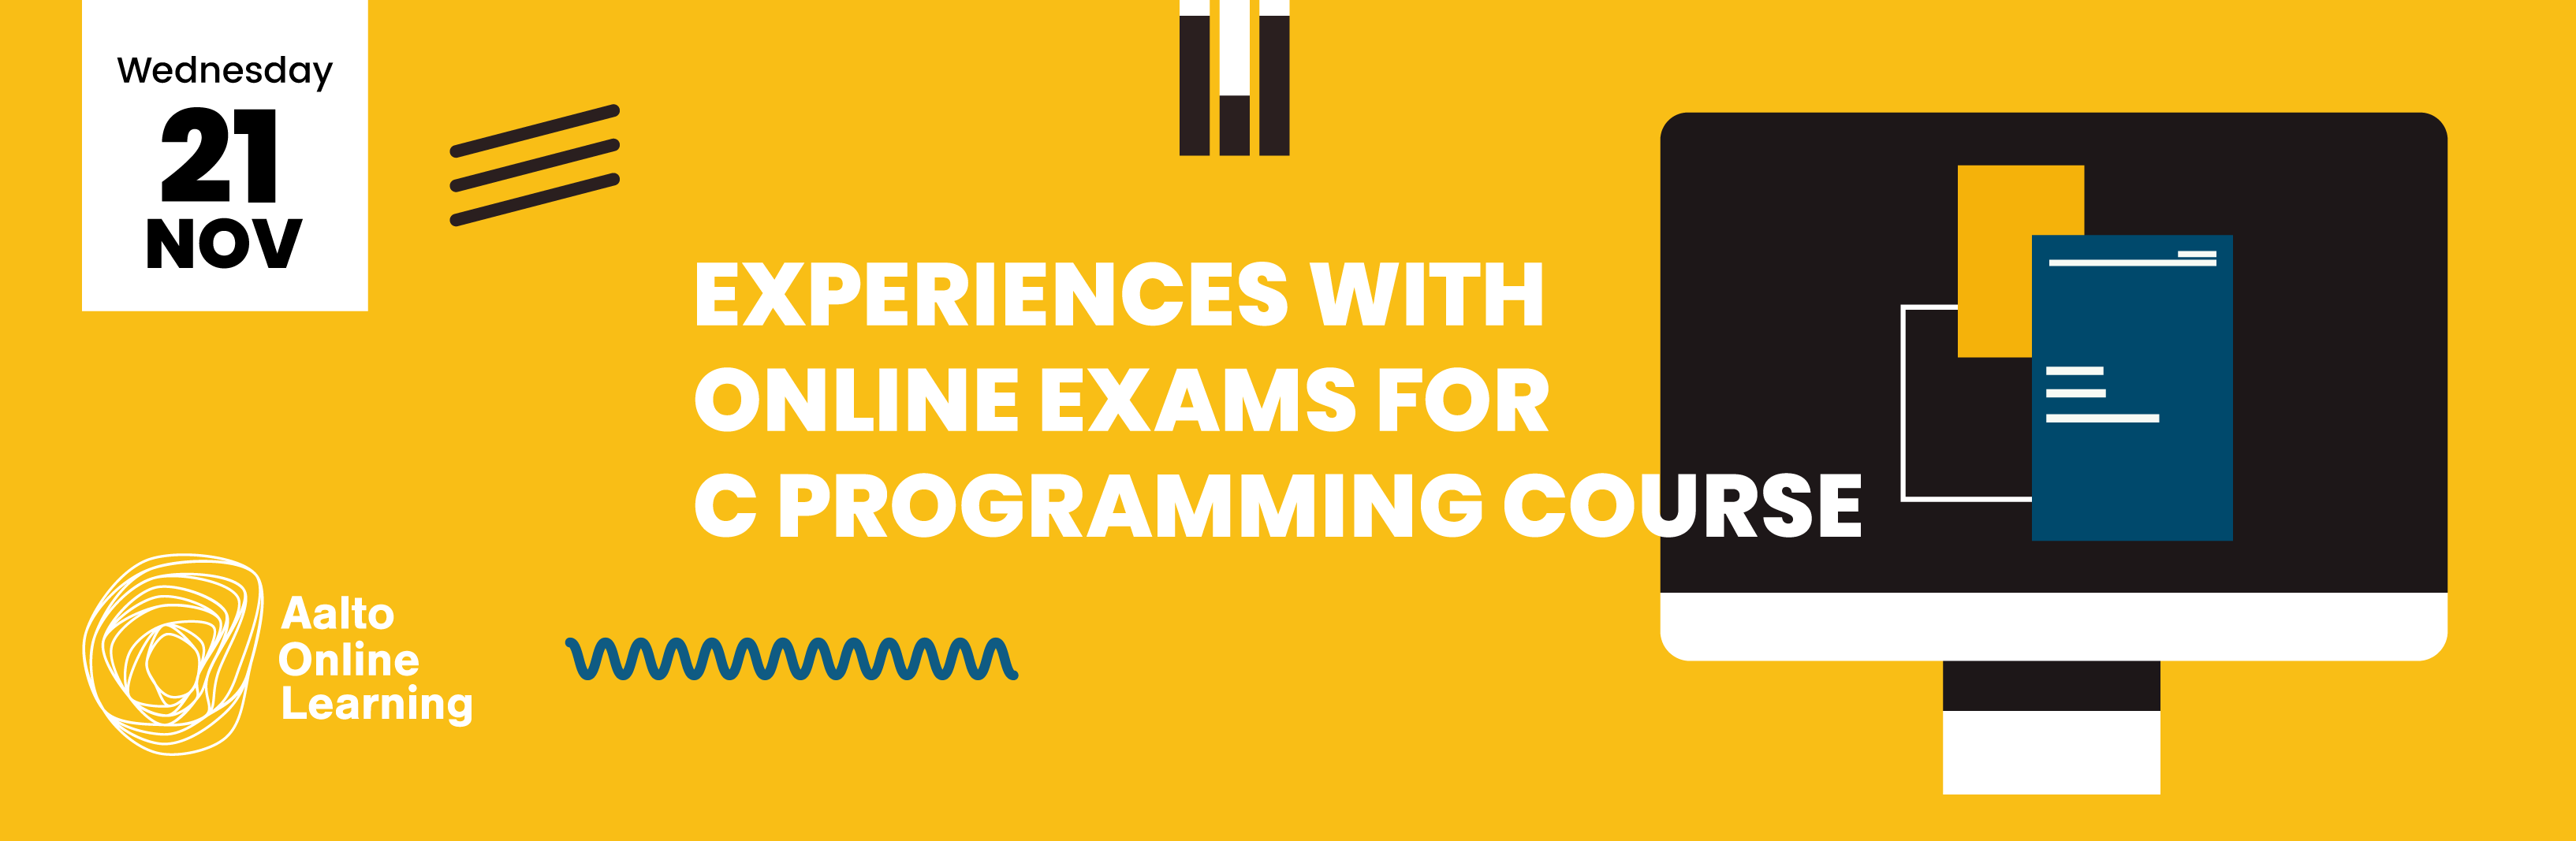 Experiences with online exams for C programming course